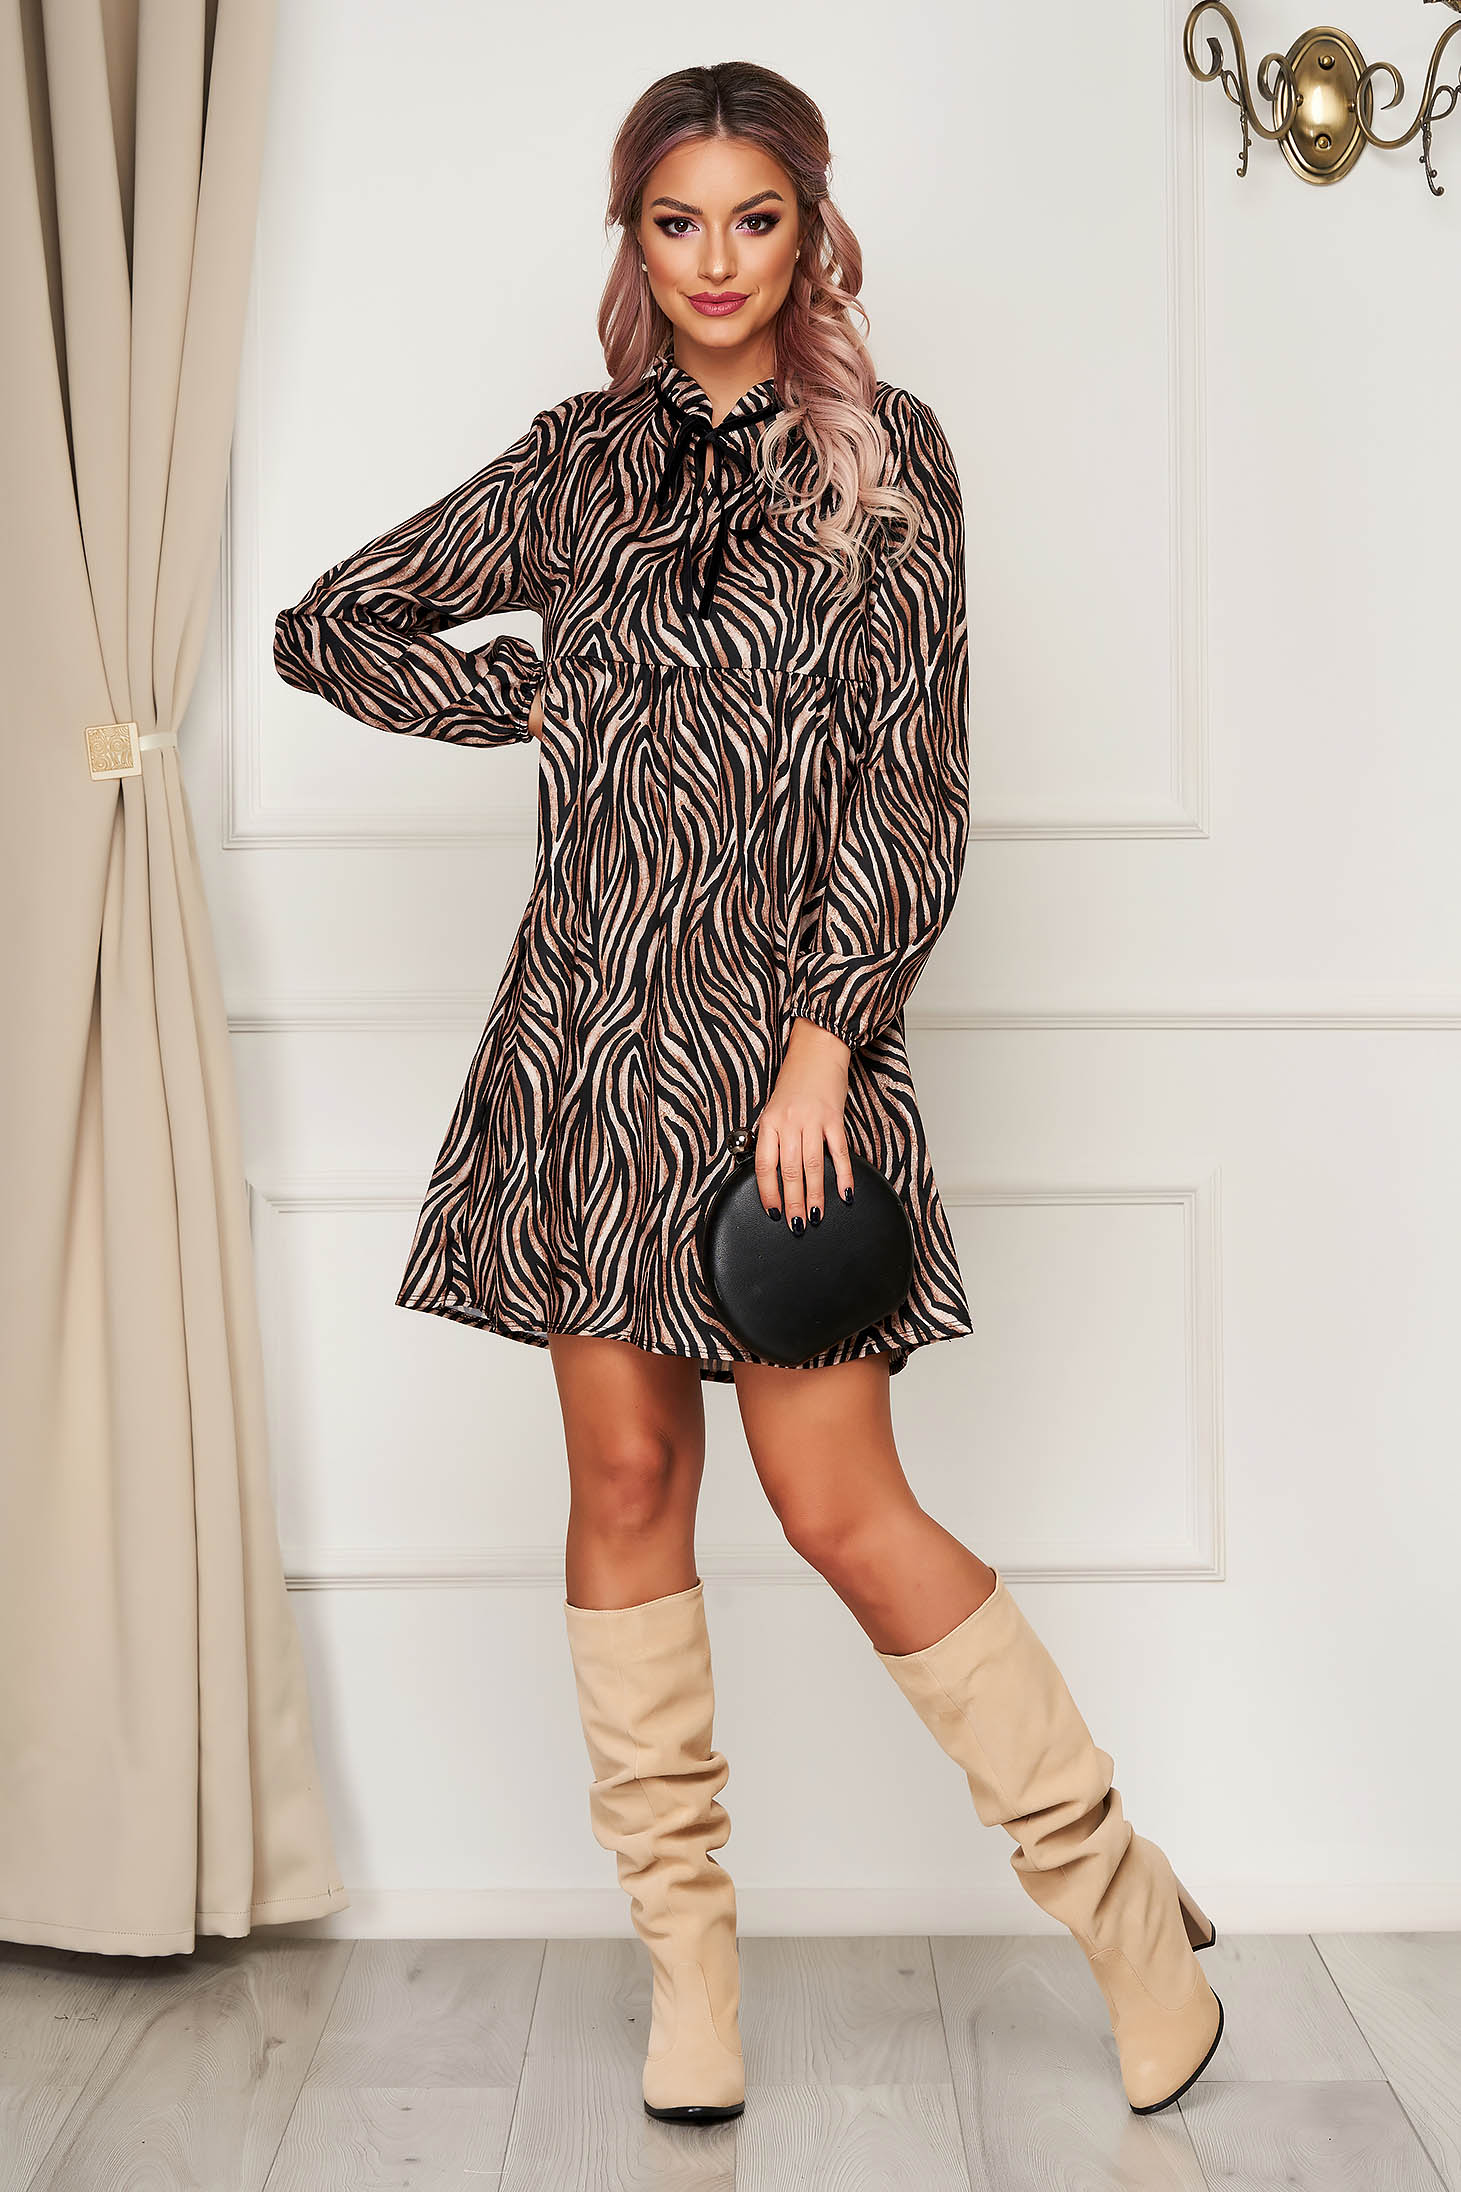 Brown dress short cut daily flared long sleeved animal print